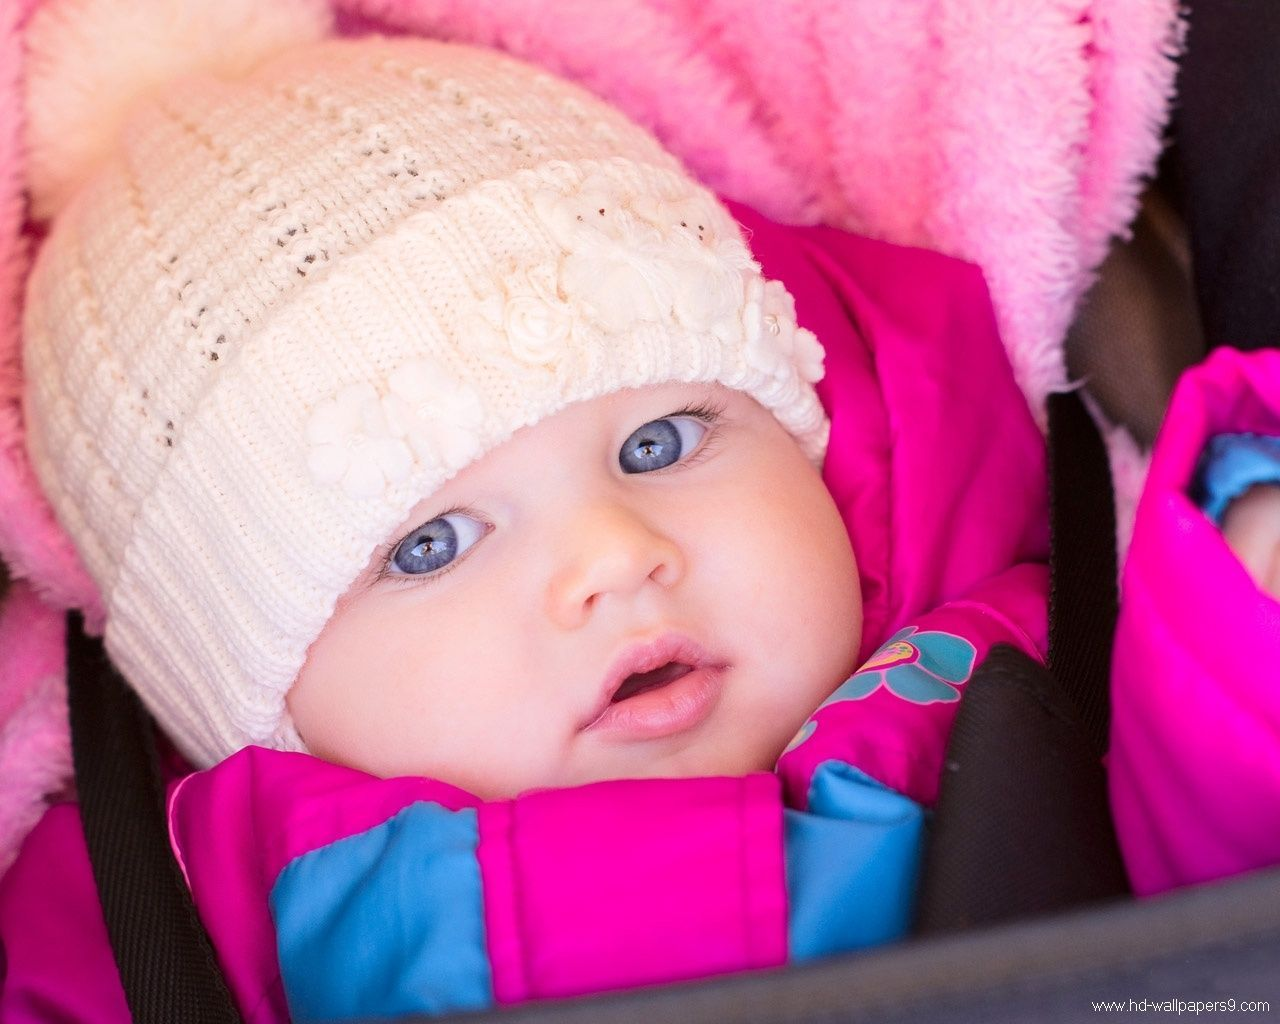 latest cute baby photos for desktop backgrounds | wallpapers